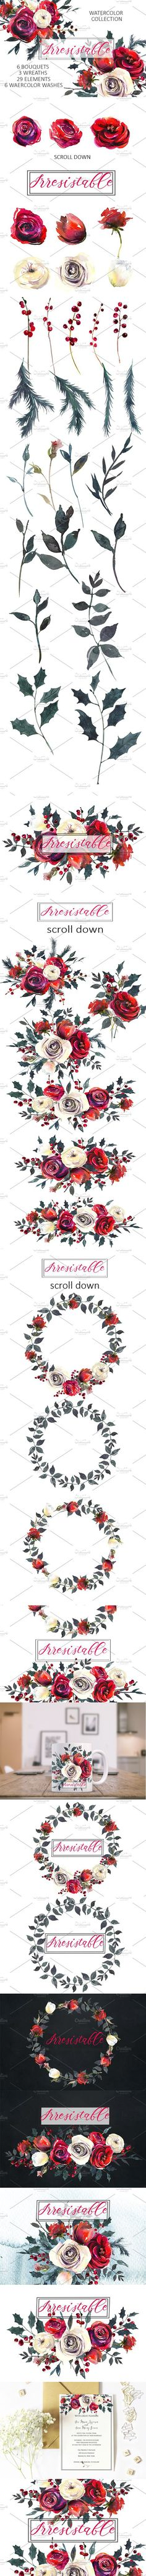 Red Roses Watercolor Clipart Set. Wedding Card Templates. $12.00